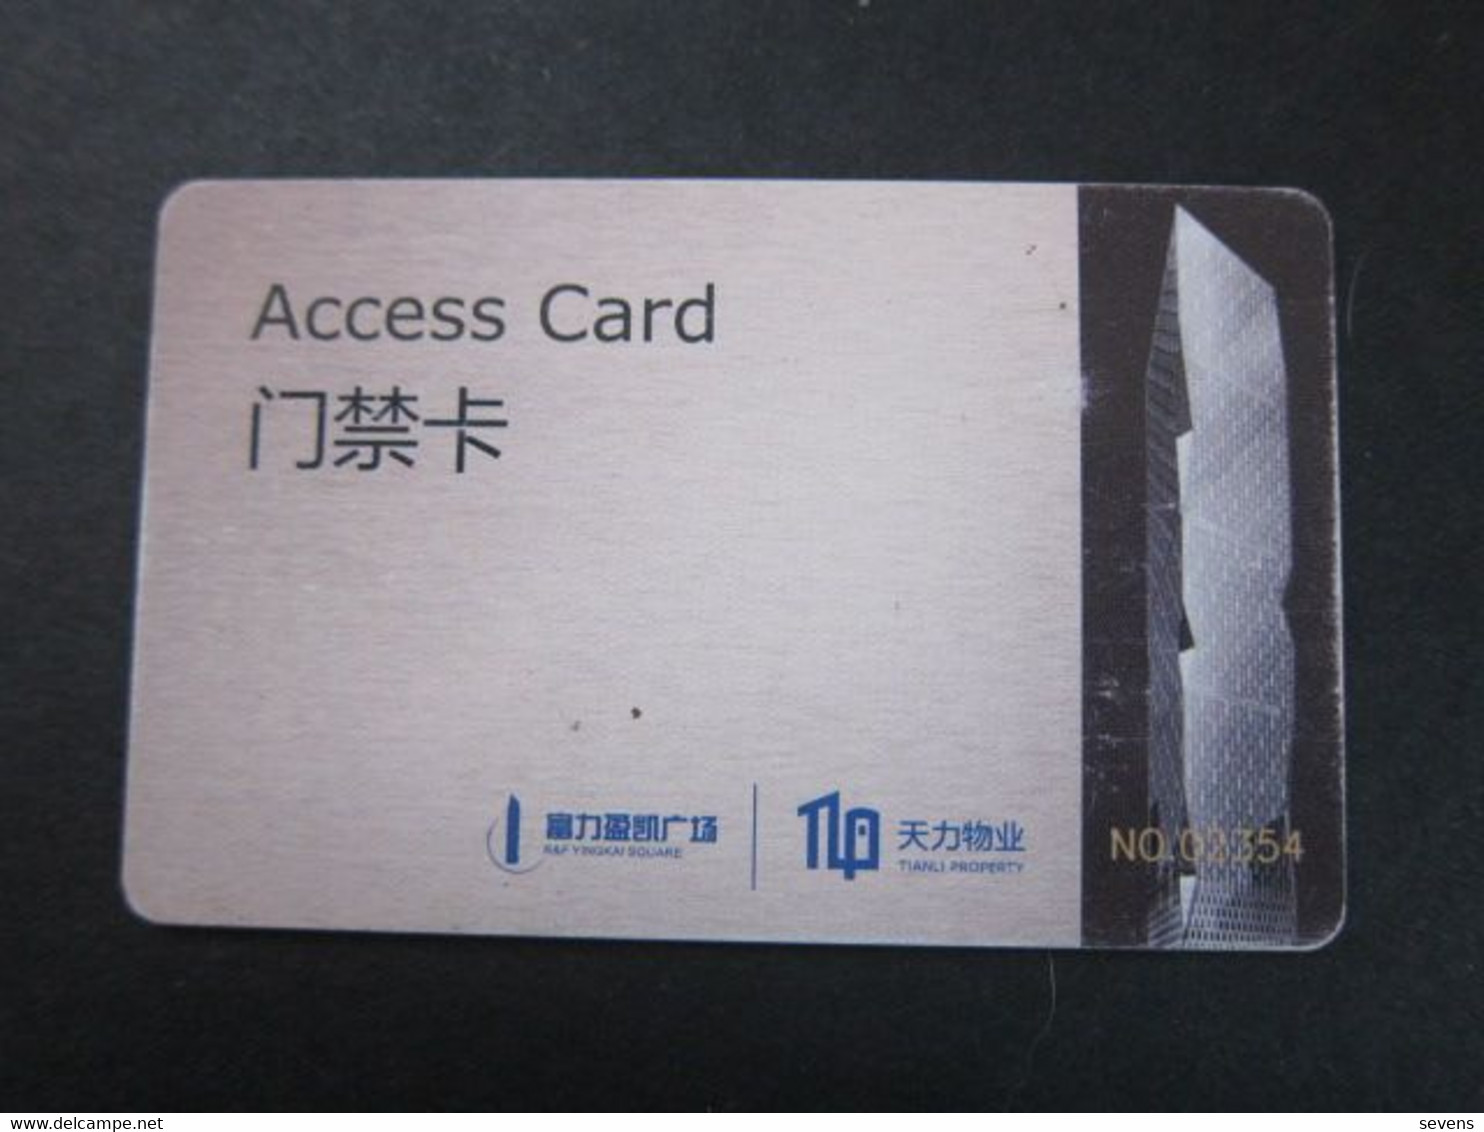 R&F Yingkai Square Access Card - Unclassified